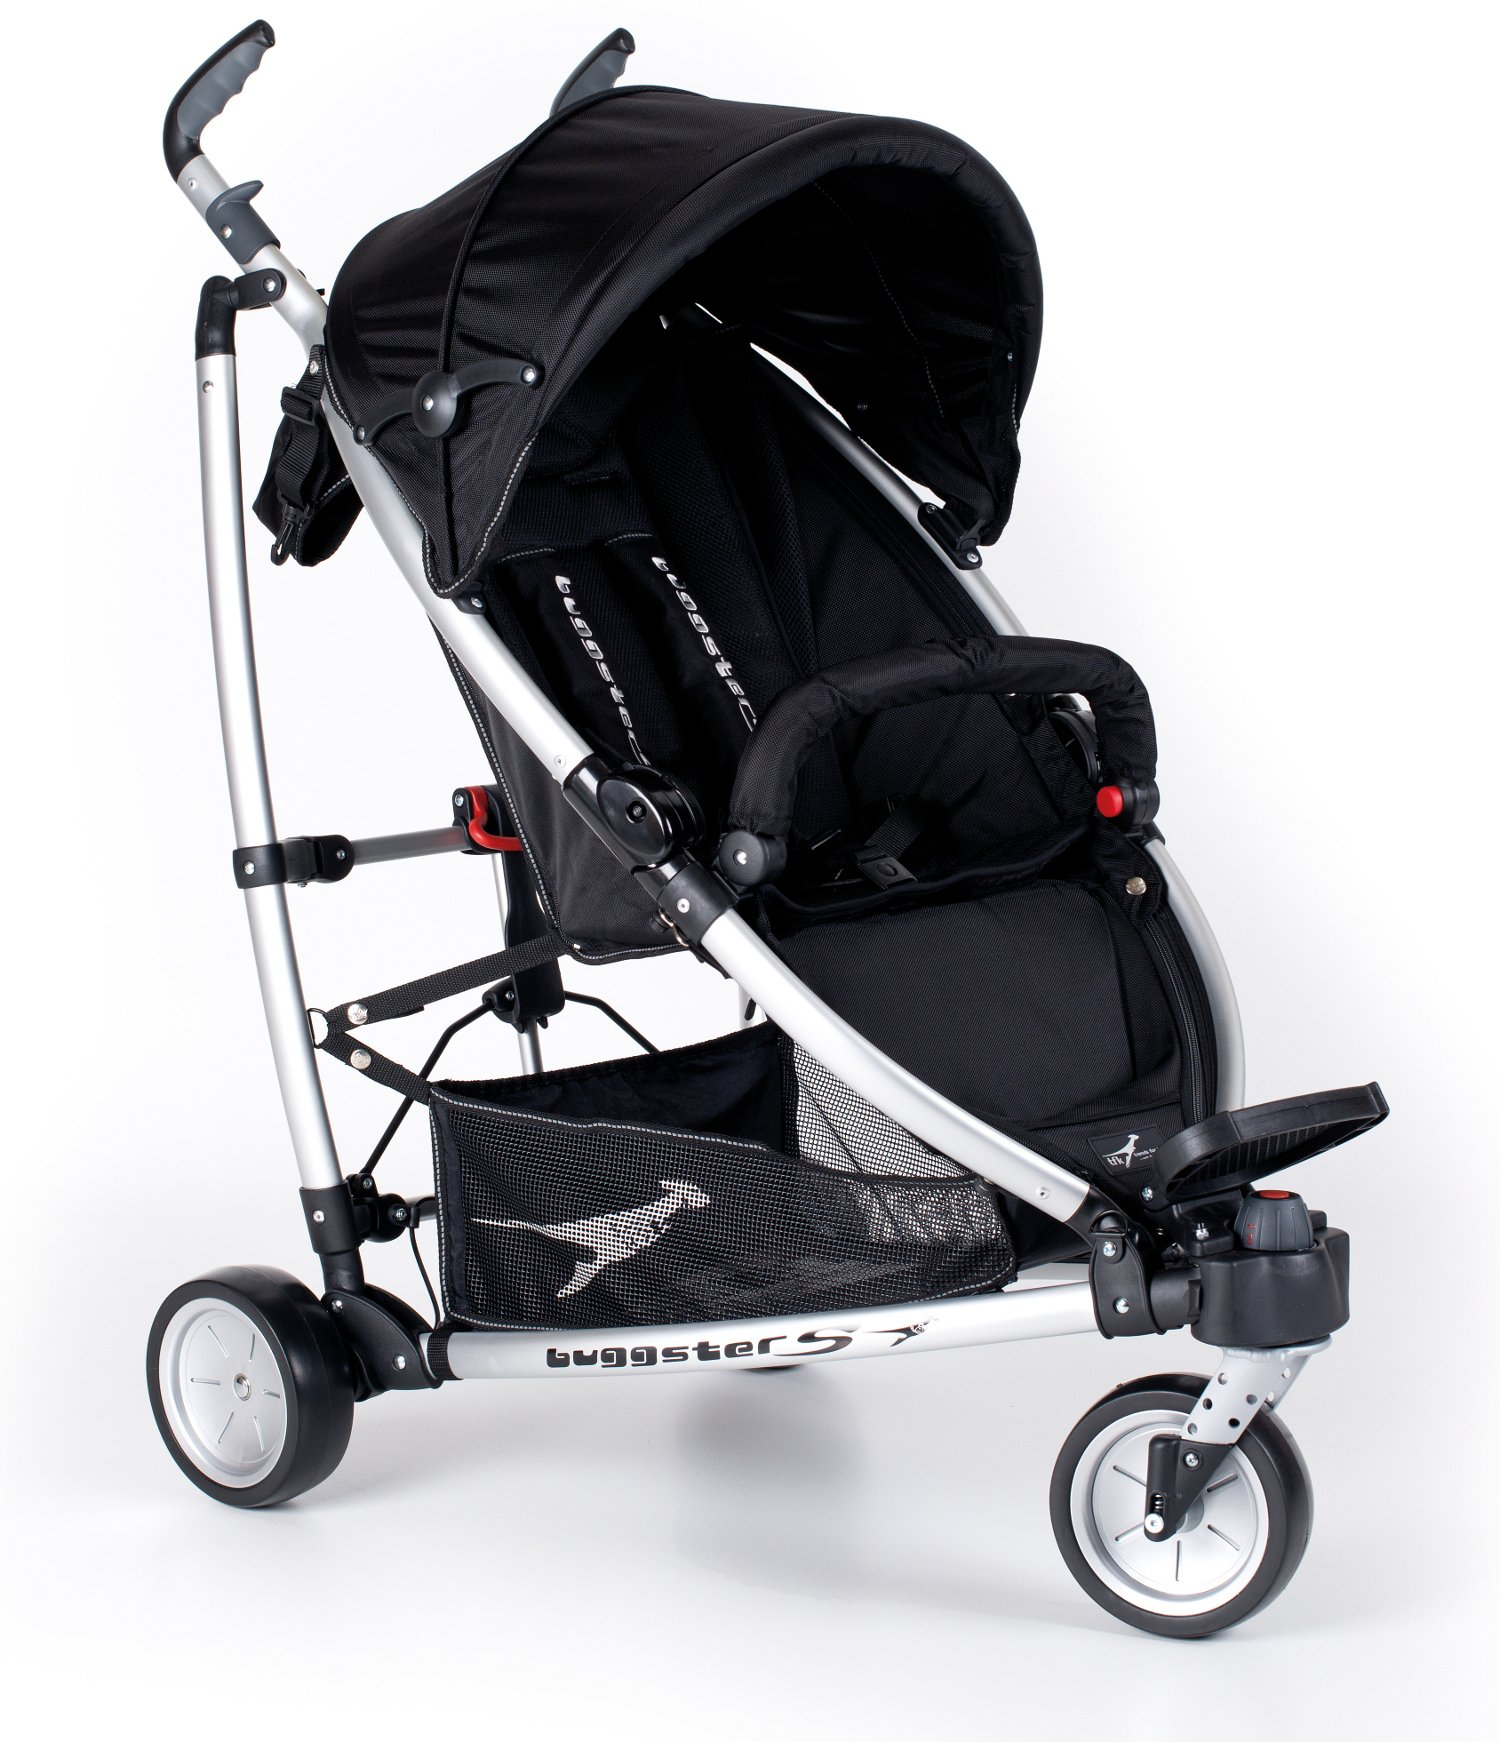 Trend for Kids (TFK) Buggster FoZt1T